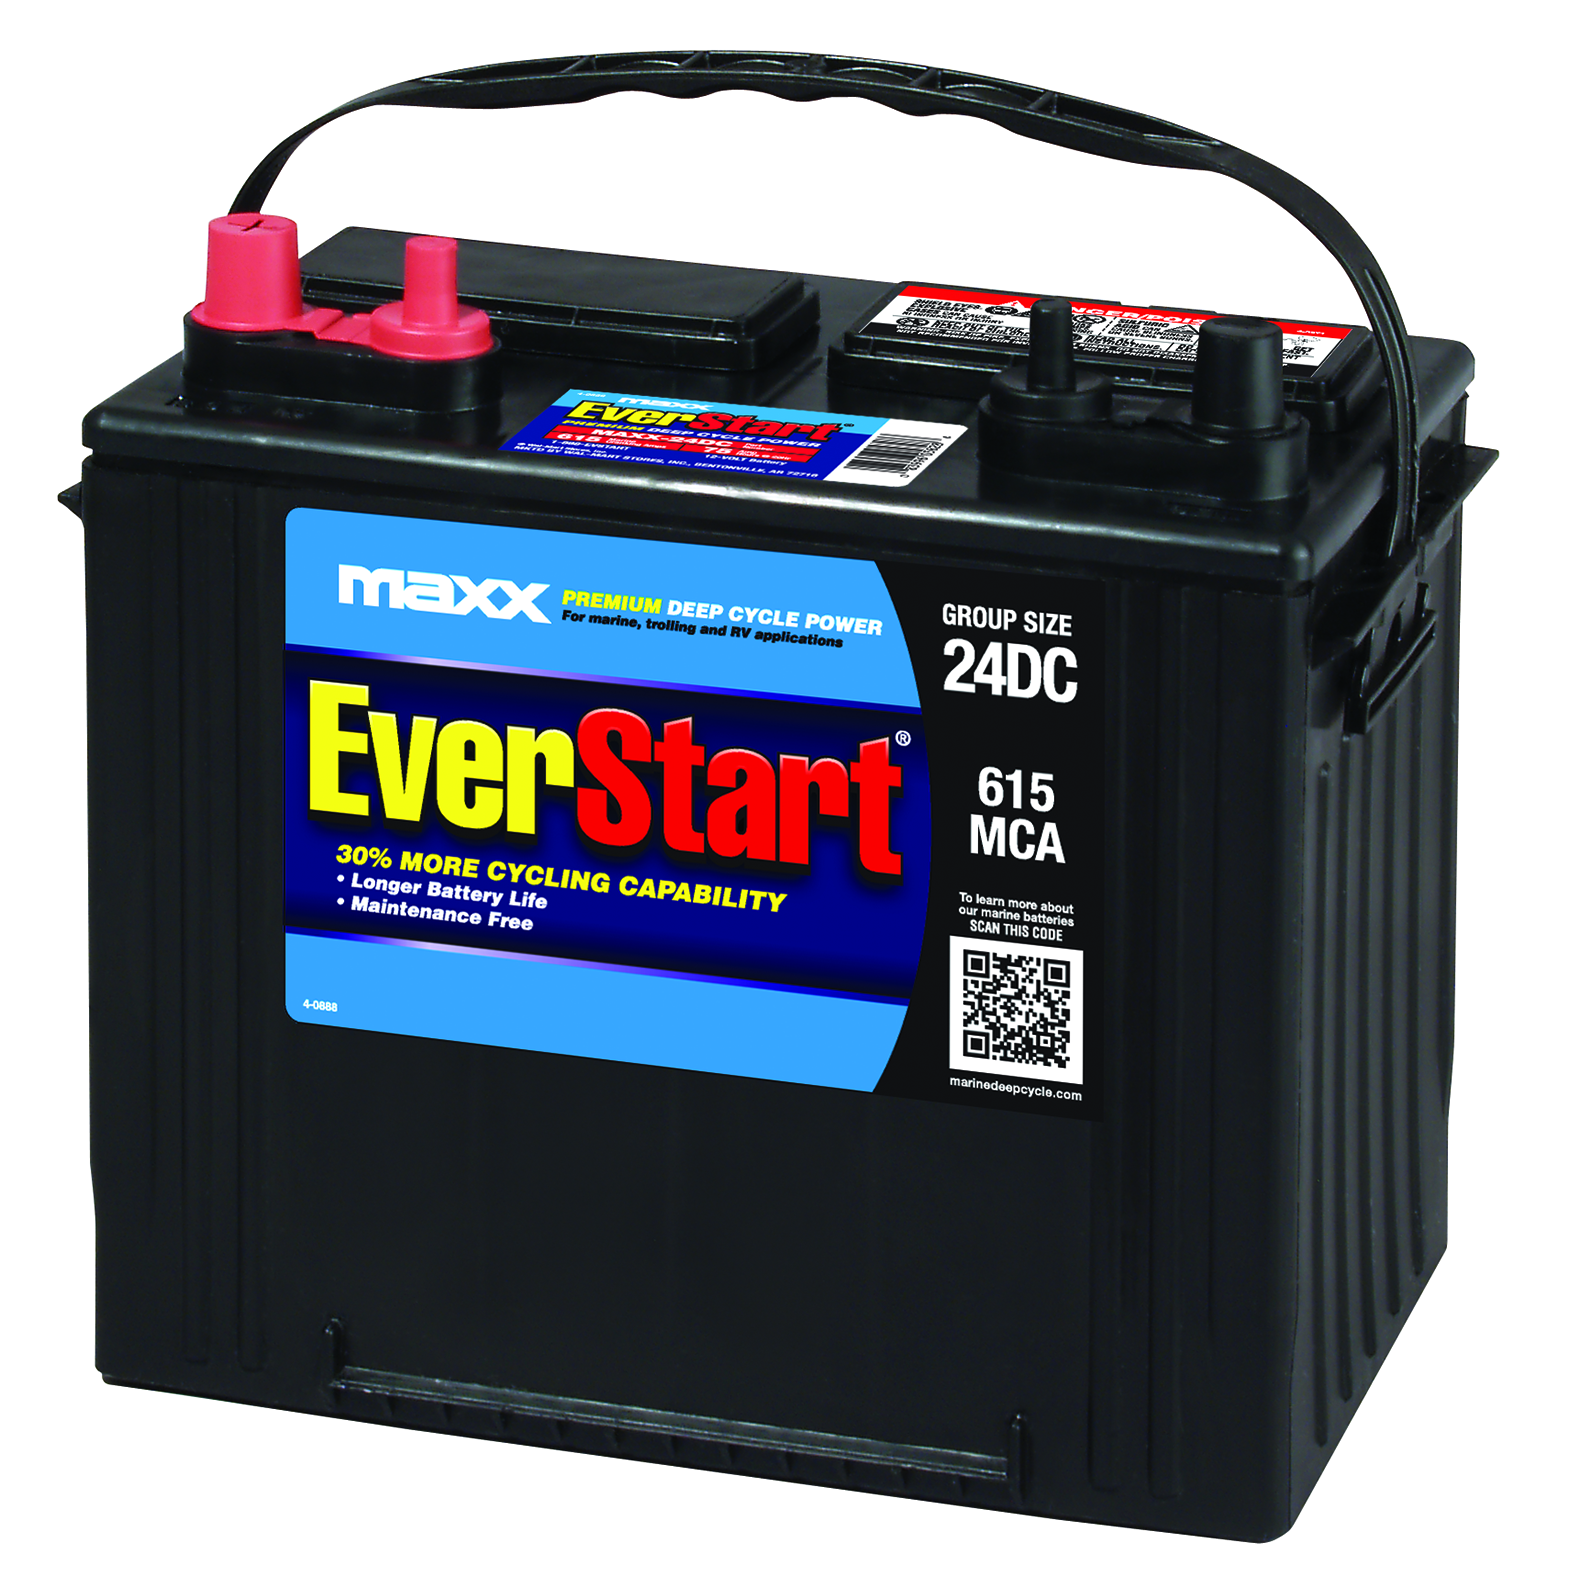 Everstart Maxx Lead Acid Marine Rv Battery Group 24dc Walmart Com